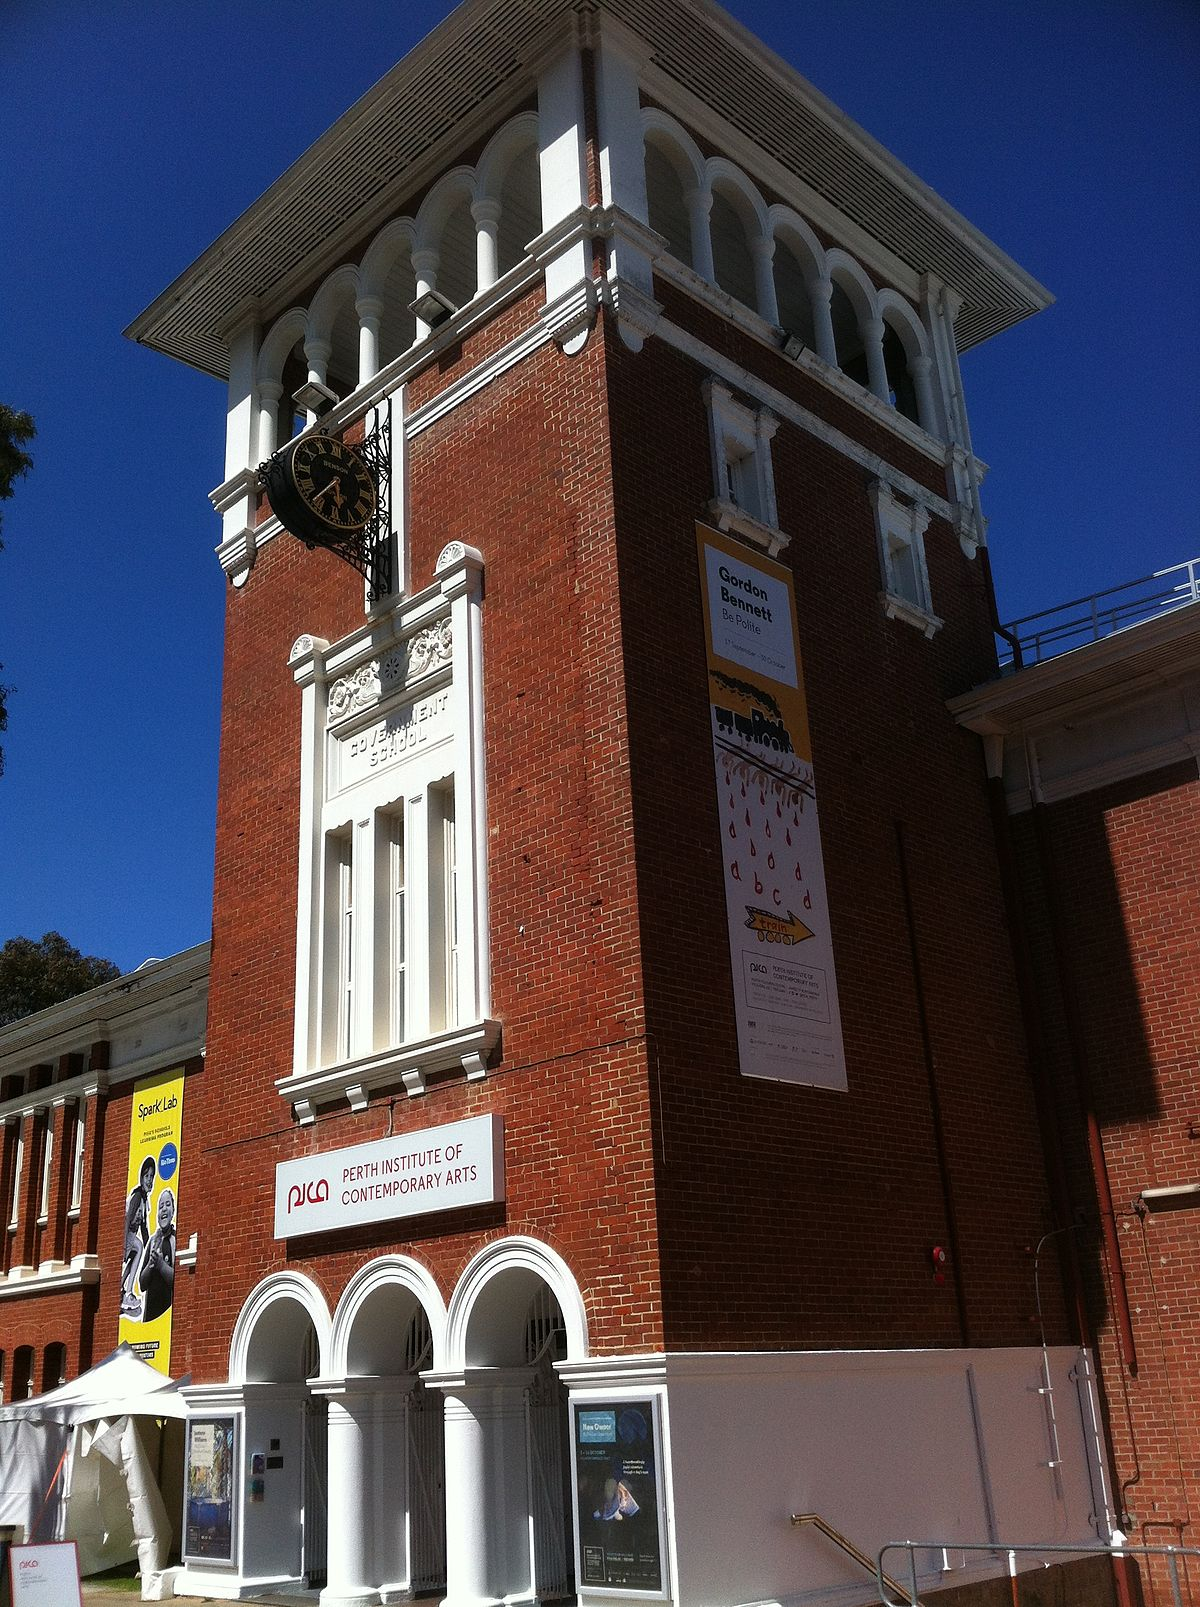 Dating history in Perth